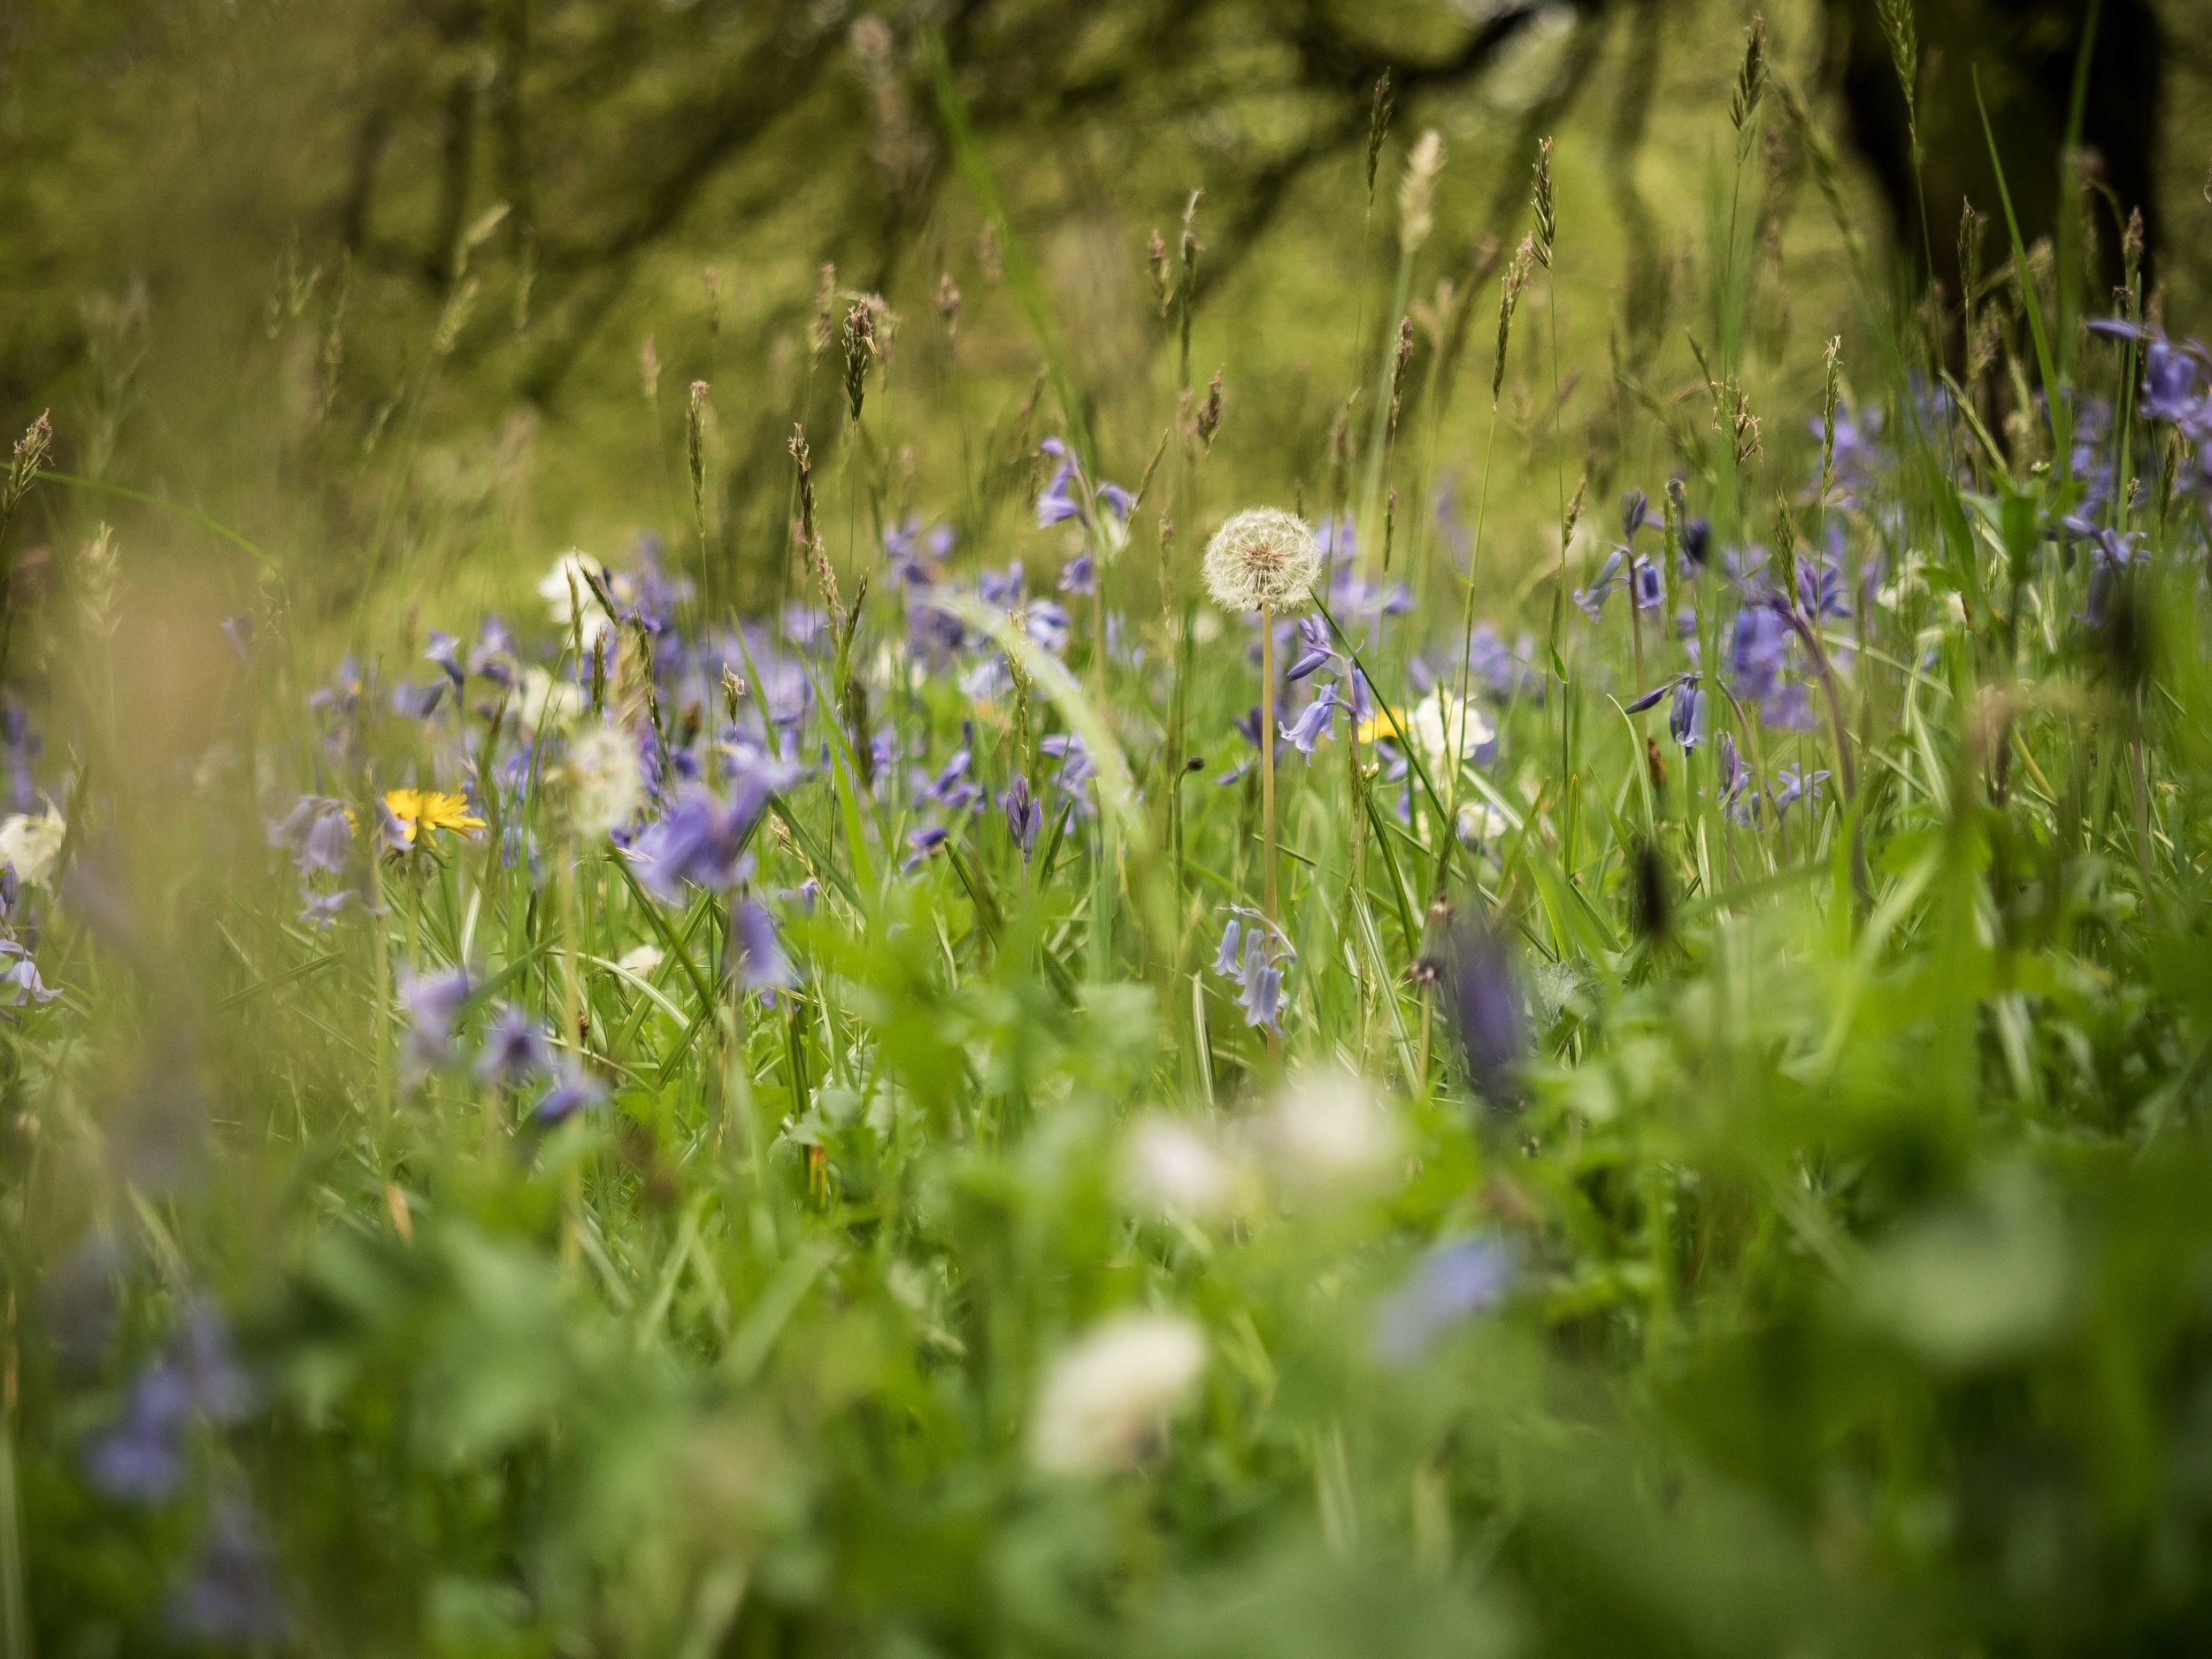 A field of wildflowers with dandelions and bluebells